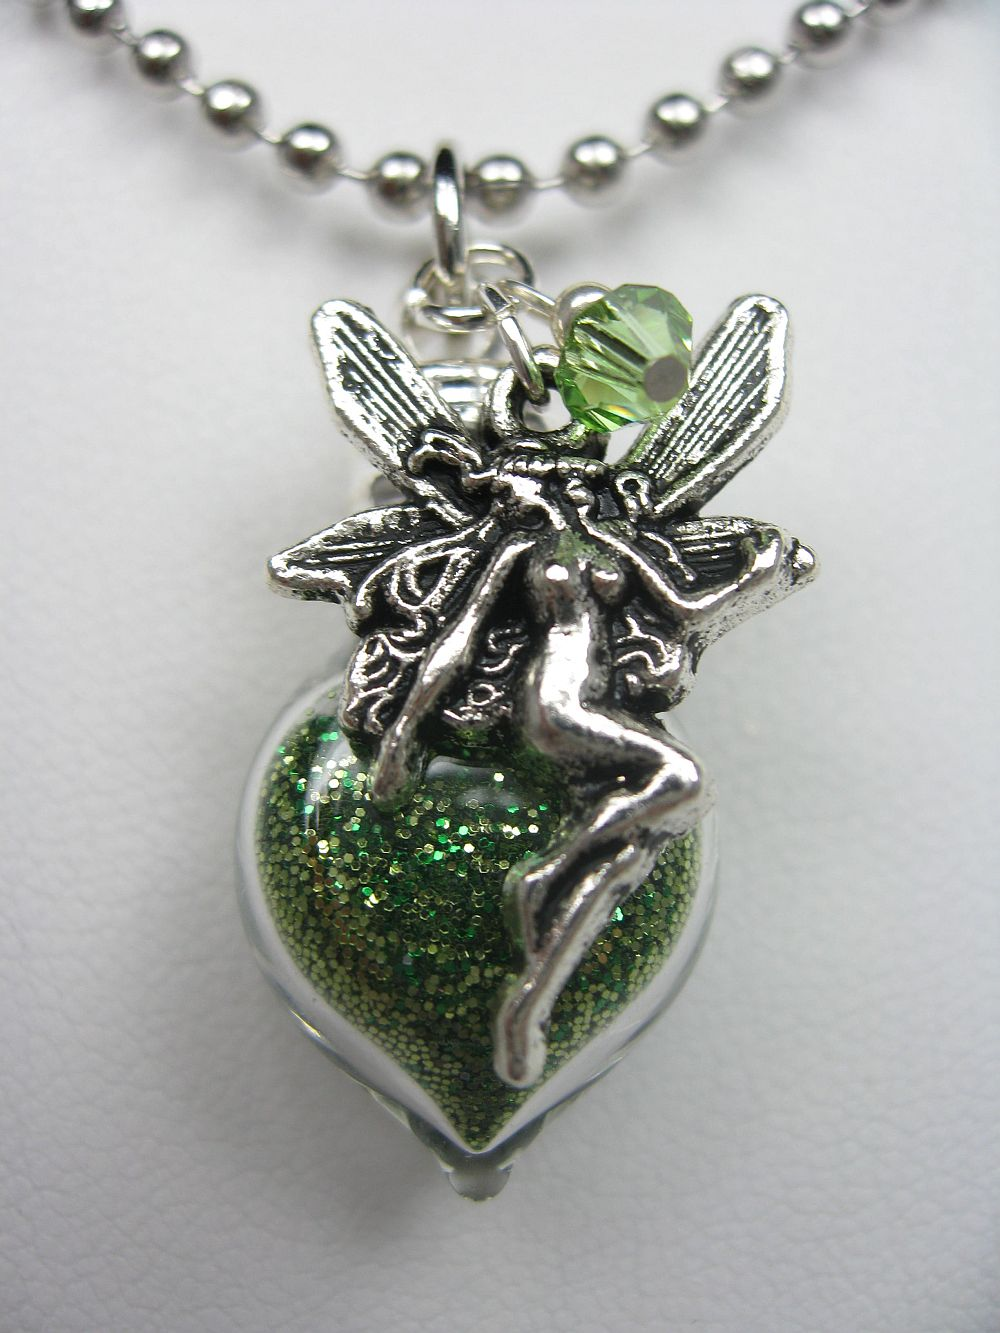 green pixie dust necklace with charm